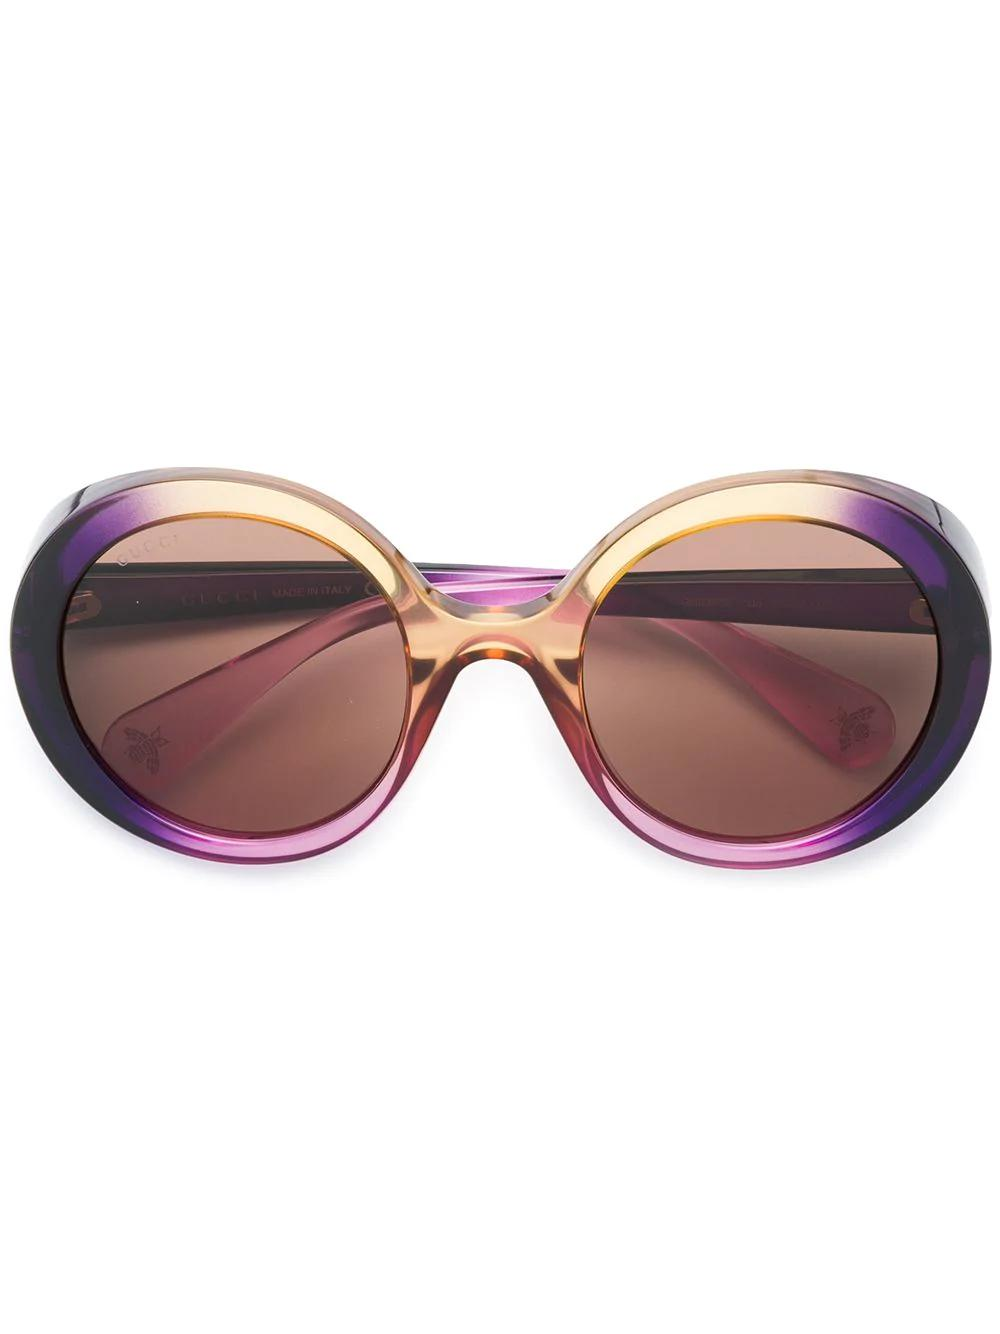 c6015b7a2ded1 Gucci Eyewear Gradient Tinted Sunglasses - Purple